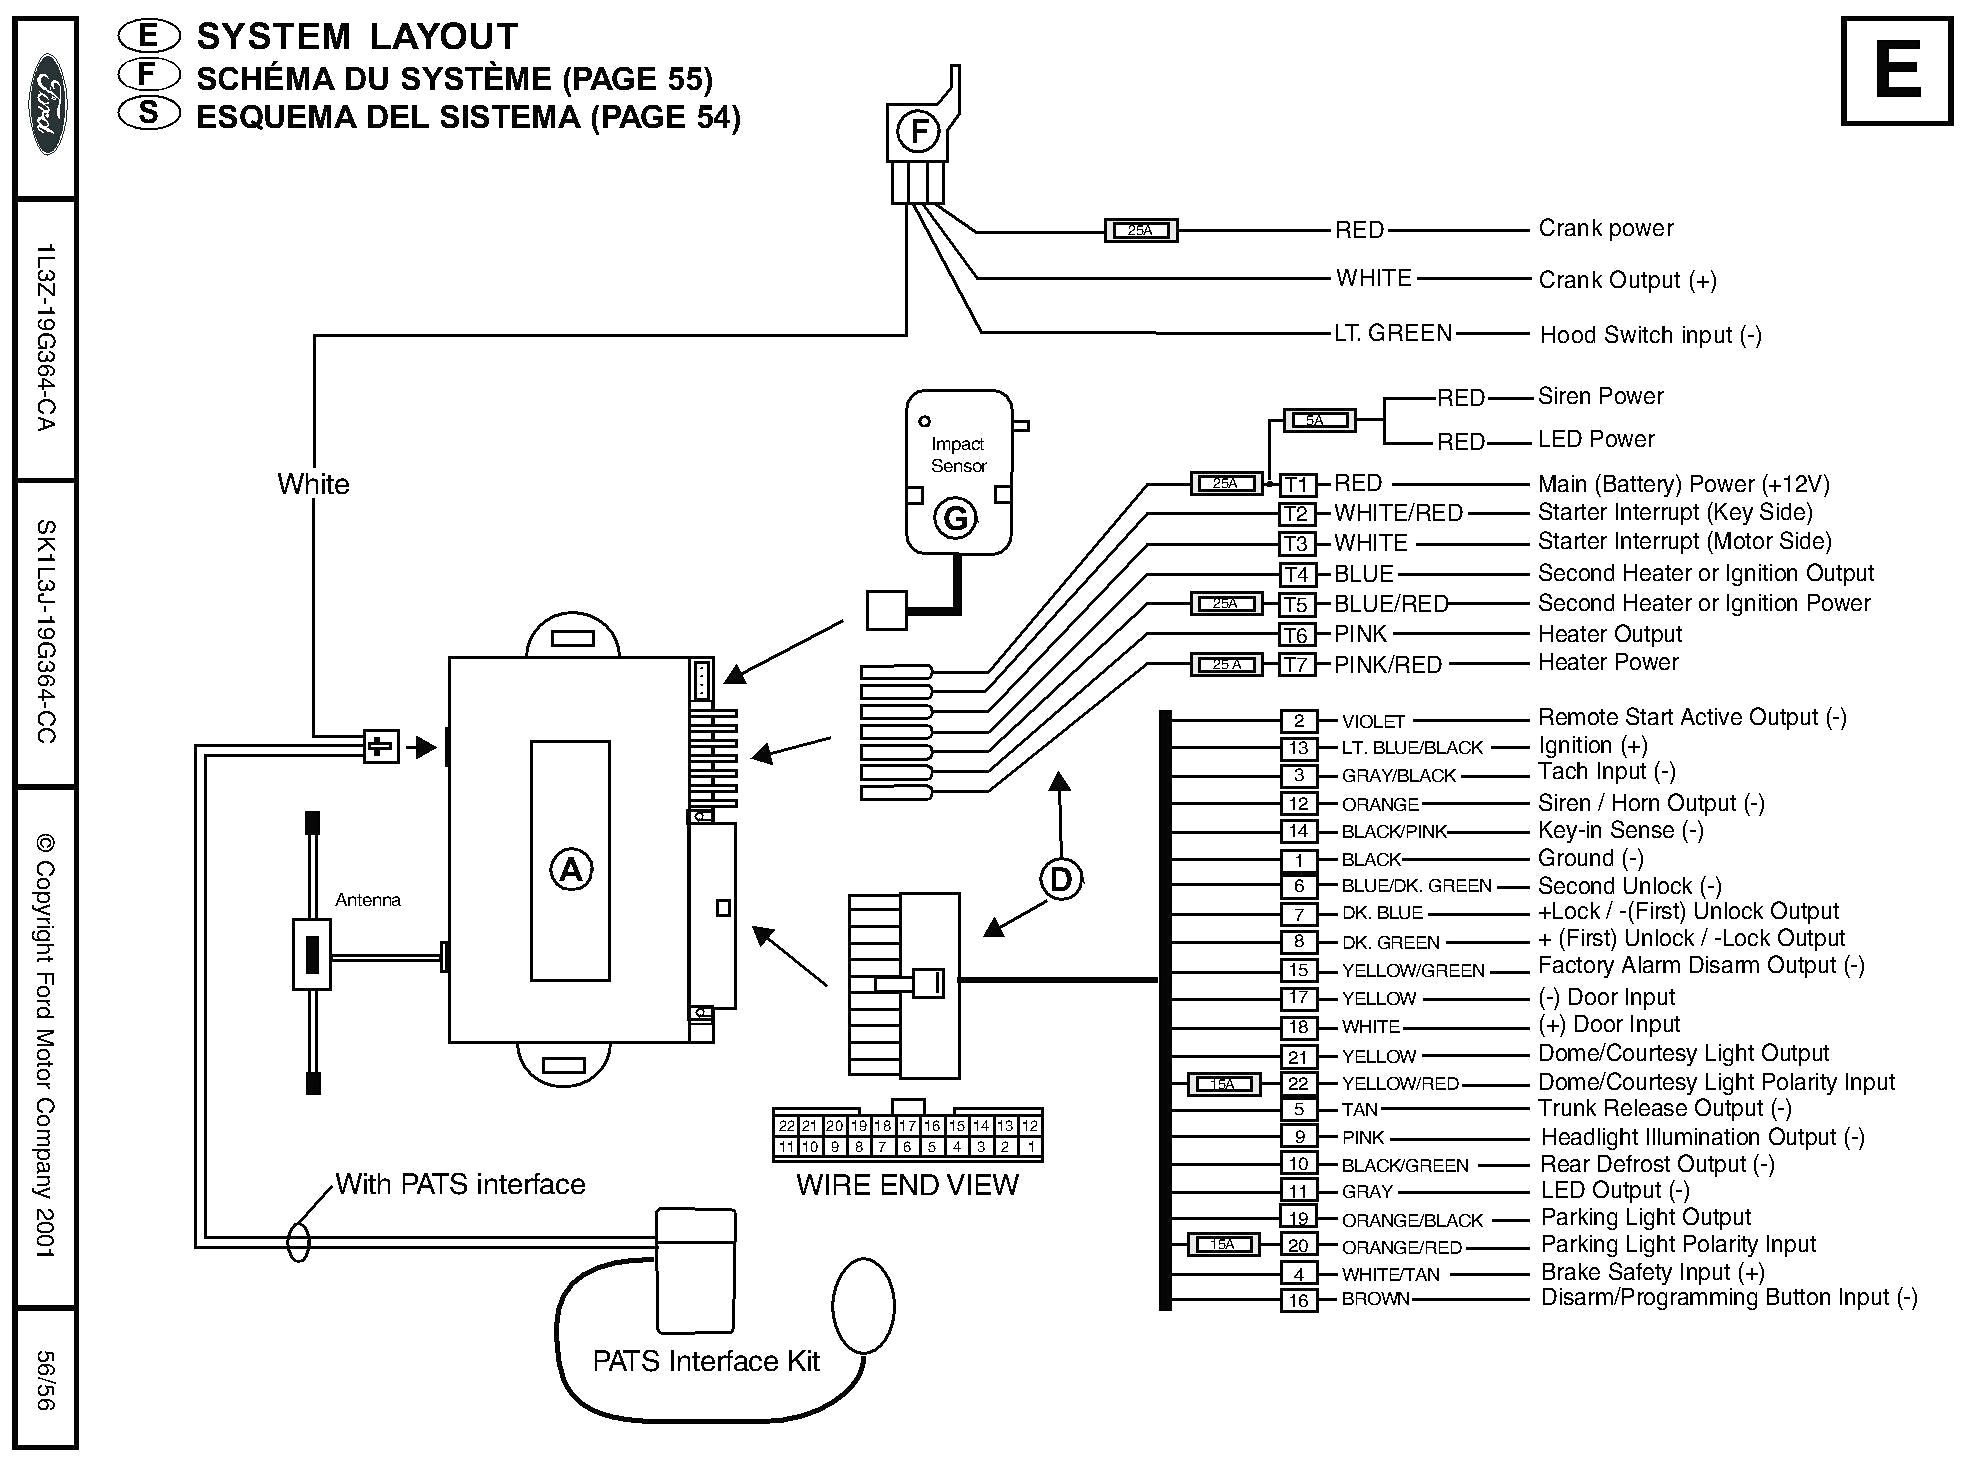 bulldog security alarm wiring diagram Download-Toyota Alarm Wiring Diagram New Vehicle Wiring Diagrams For Alarms Best Bulldog Security Wiring 14-t